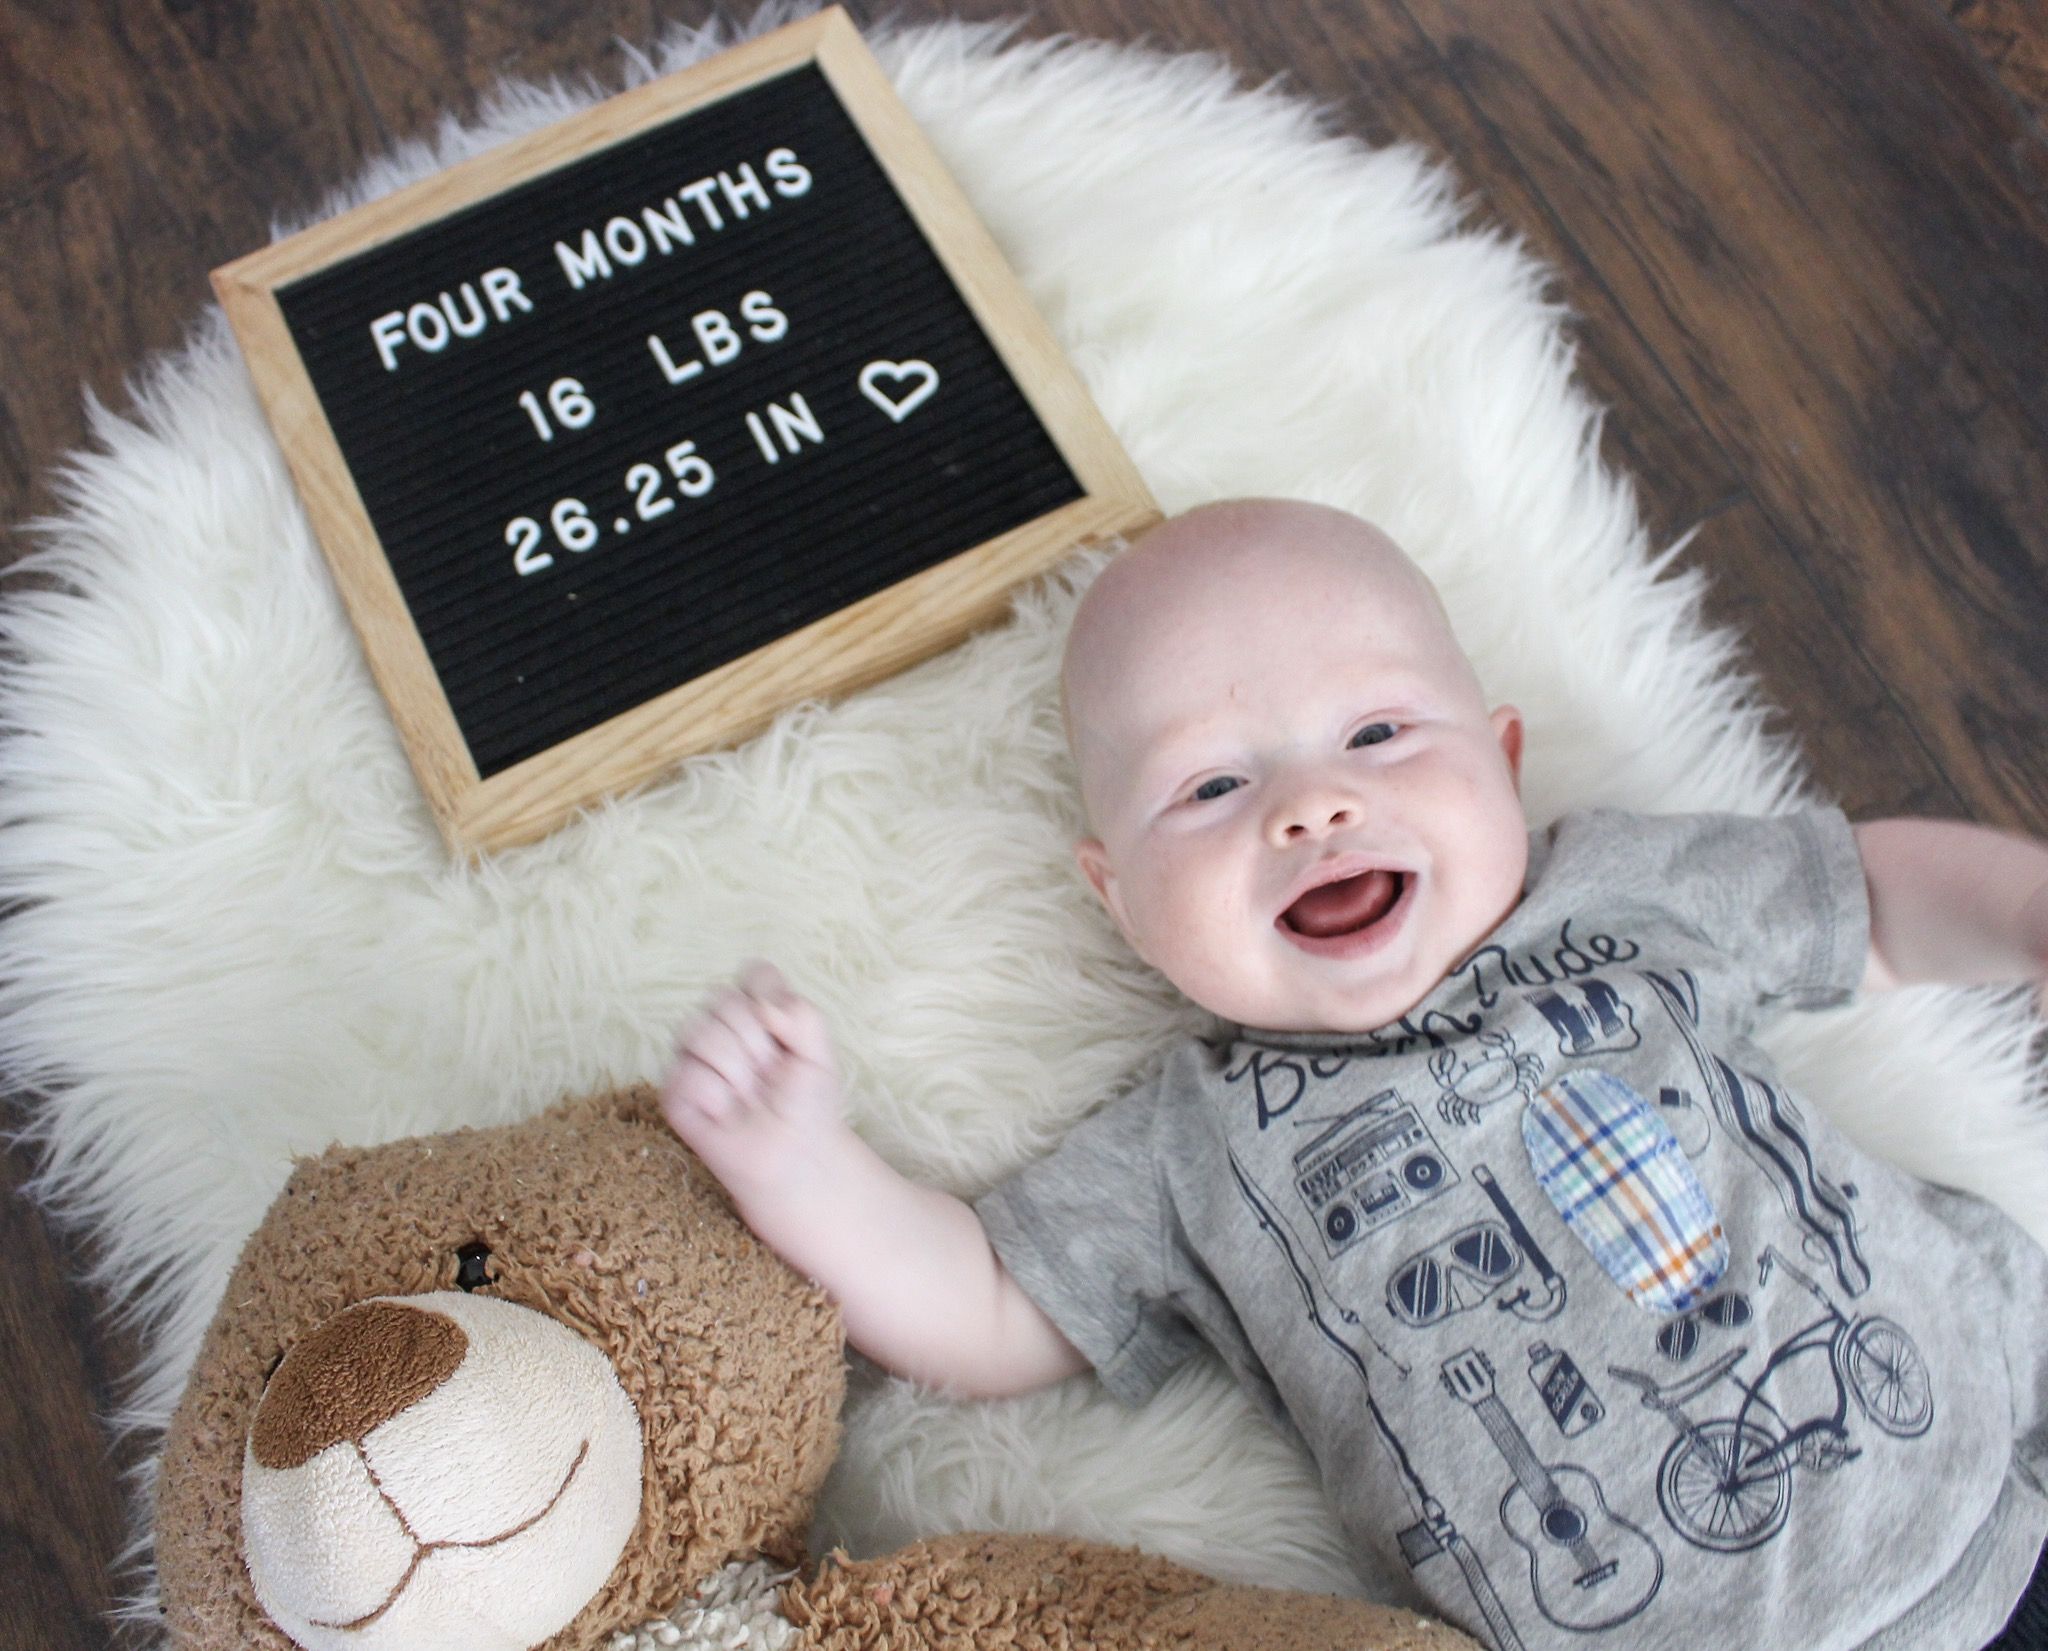 He's still super spitty ha ha I just keep reminding myself that one day it will end!  He has started giggling and laughing and it's so precious! Babies are just too cute!